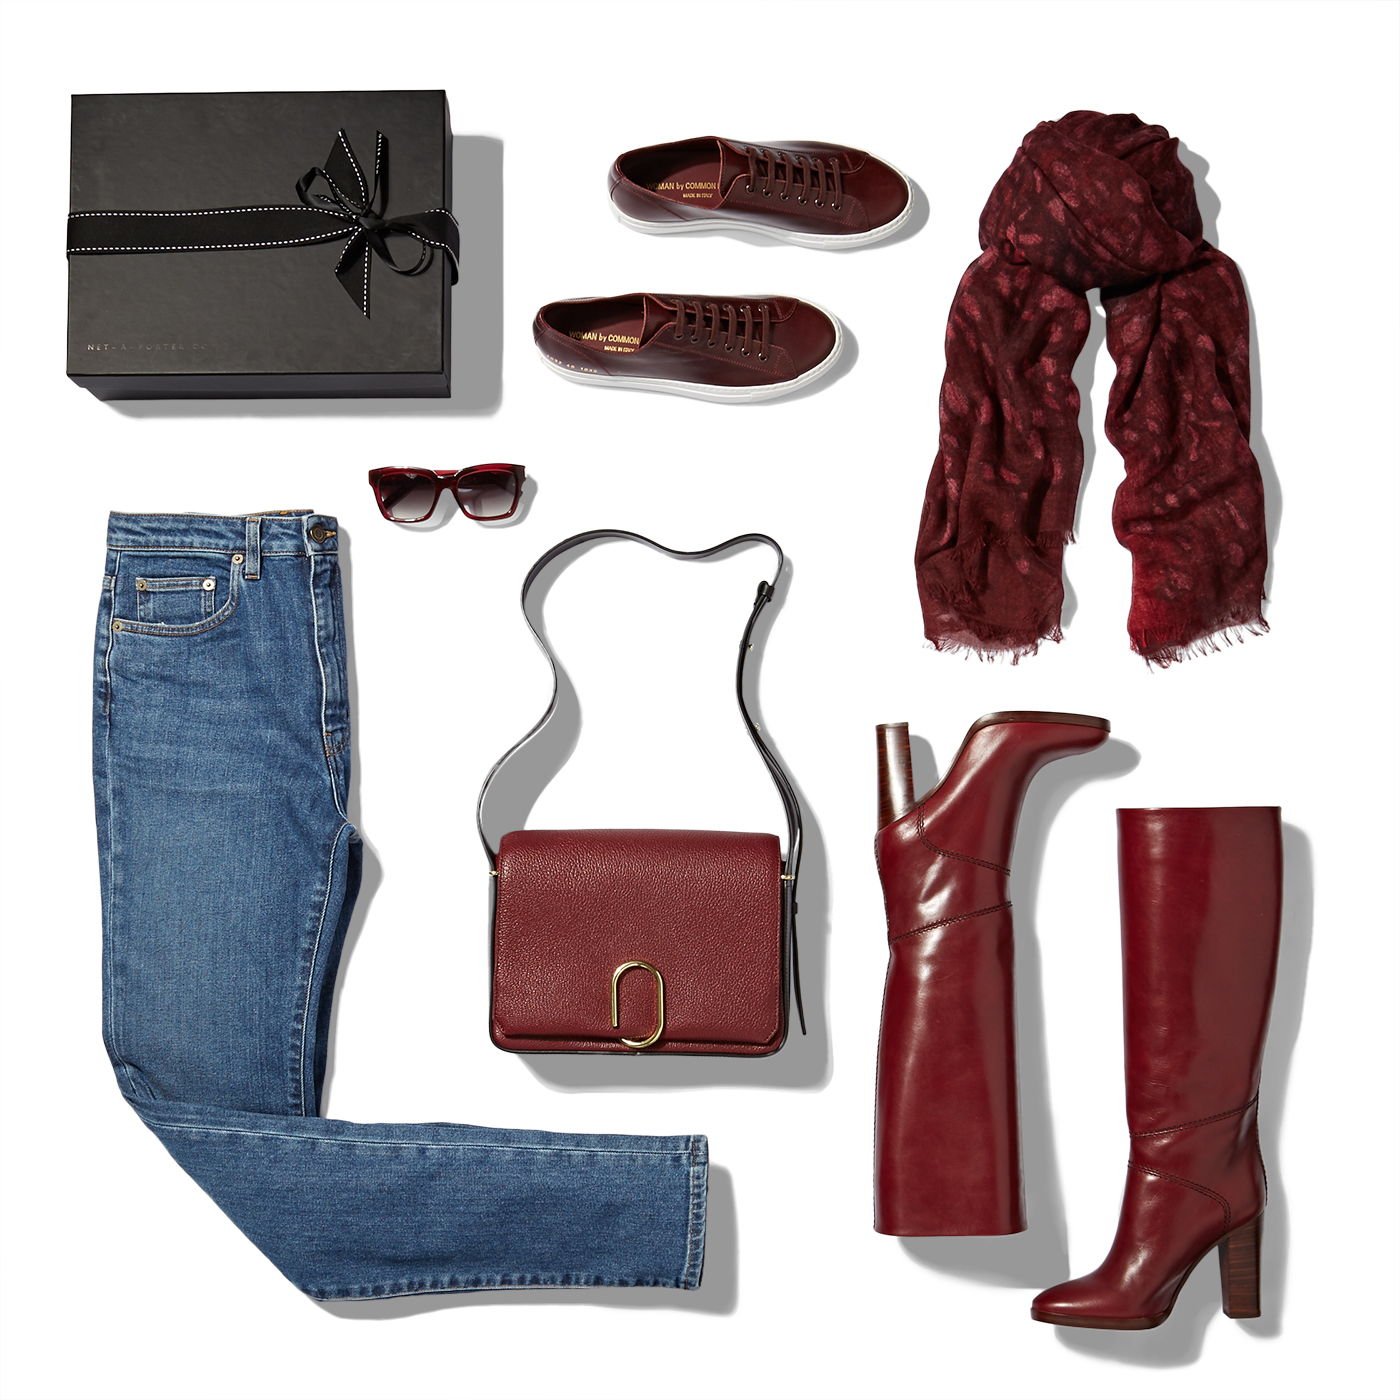 Burgundy Accessories_boxRetouched.jpg